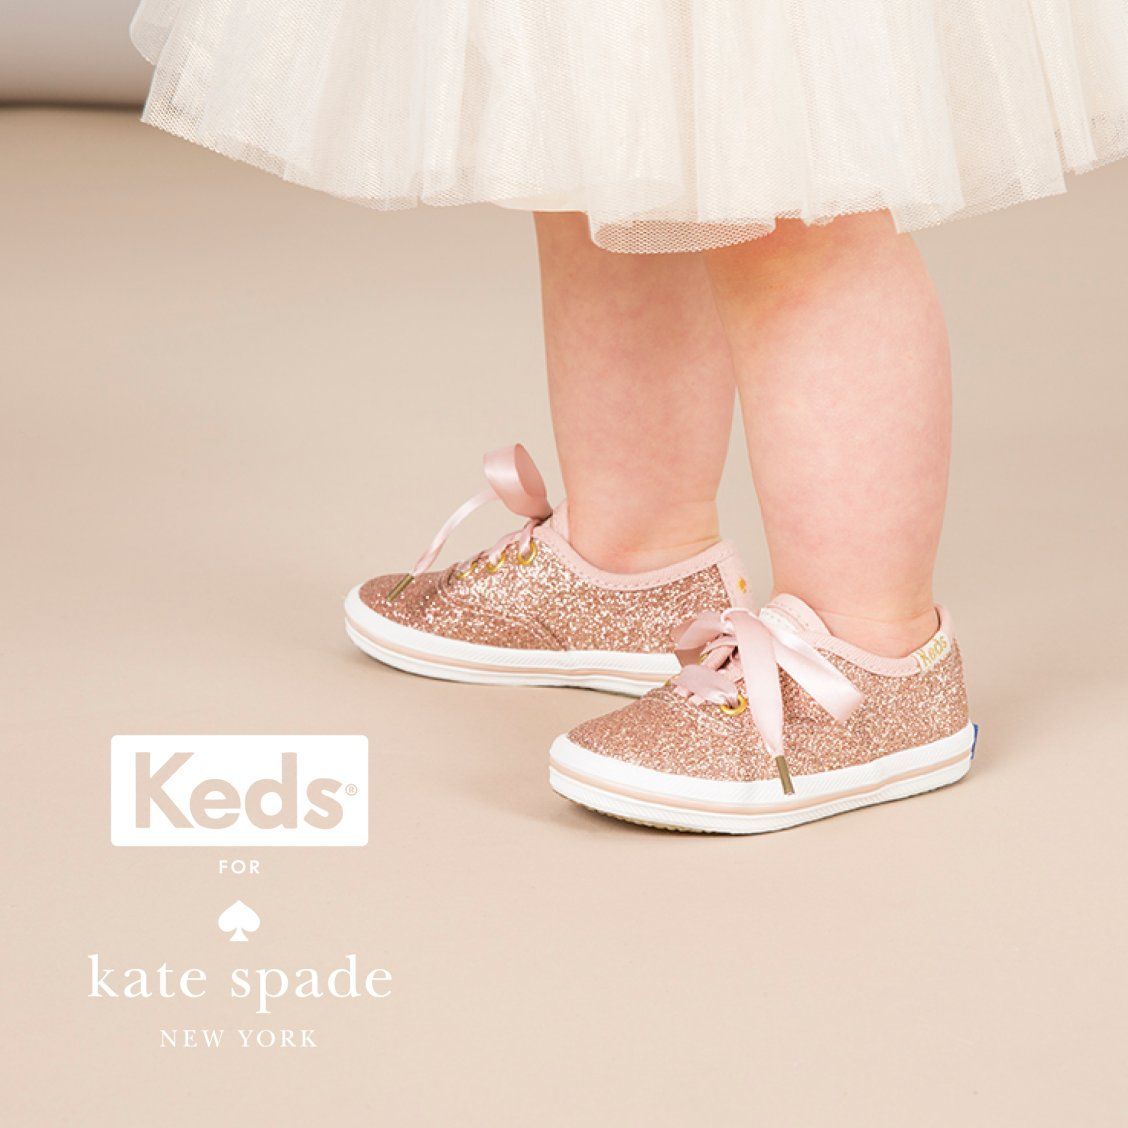 3f99f10d25ce Meet the shoes on every girl's wish list this year. Keds for Kate Spade New  York.